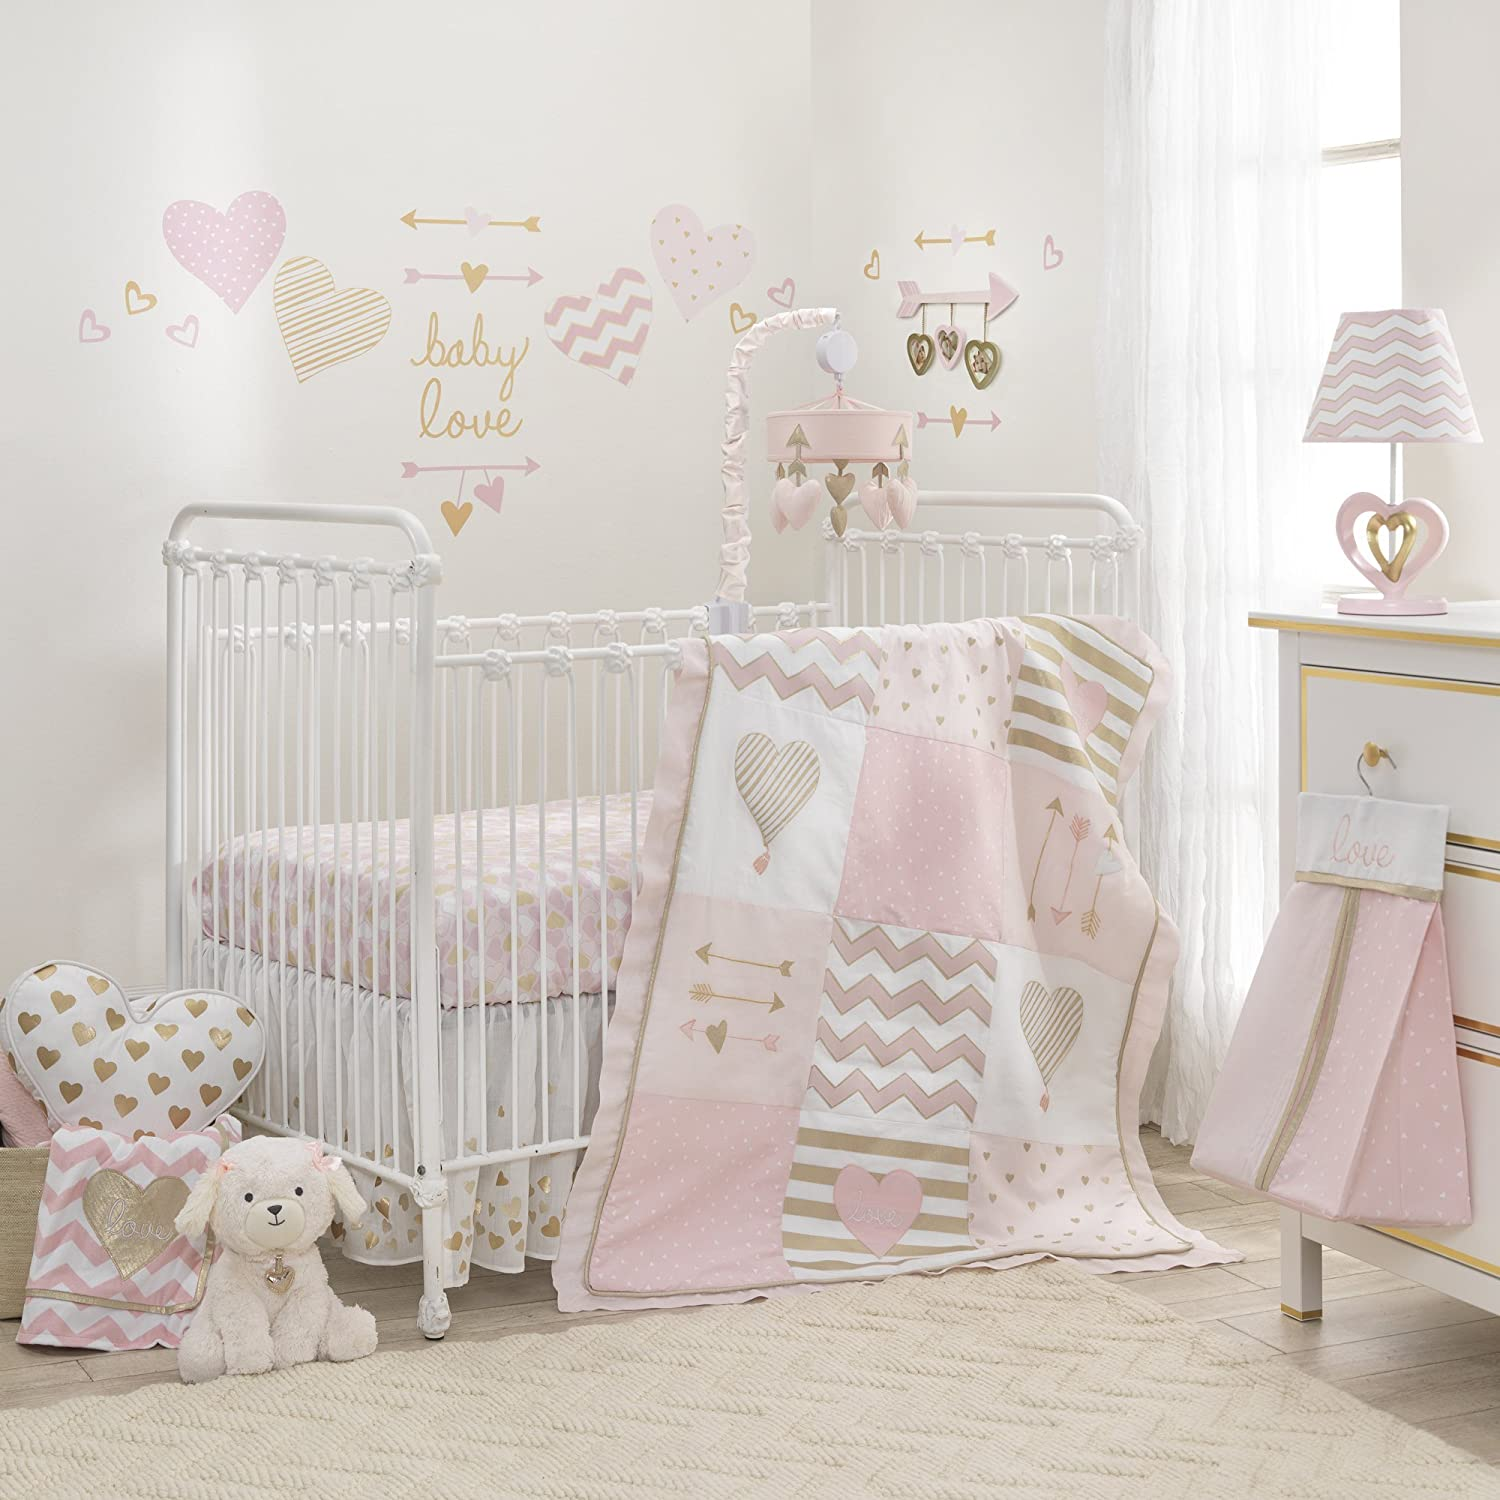 Lambs & Ivy Baby Love 6-Piece Girl Crib Bedding Set, Pink/Gold/White Hearts/Stripes/Chevron 690006K